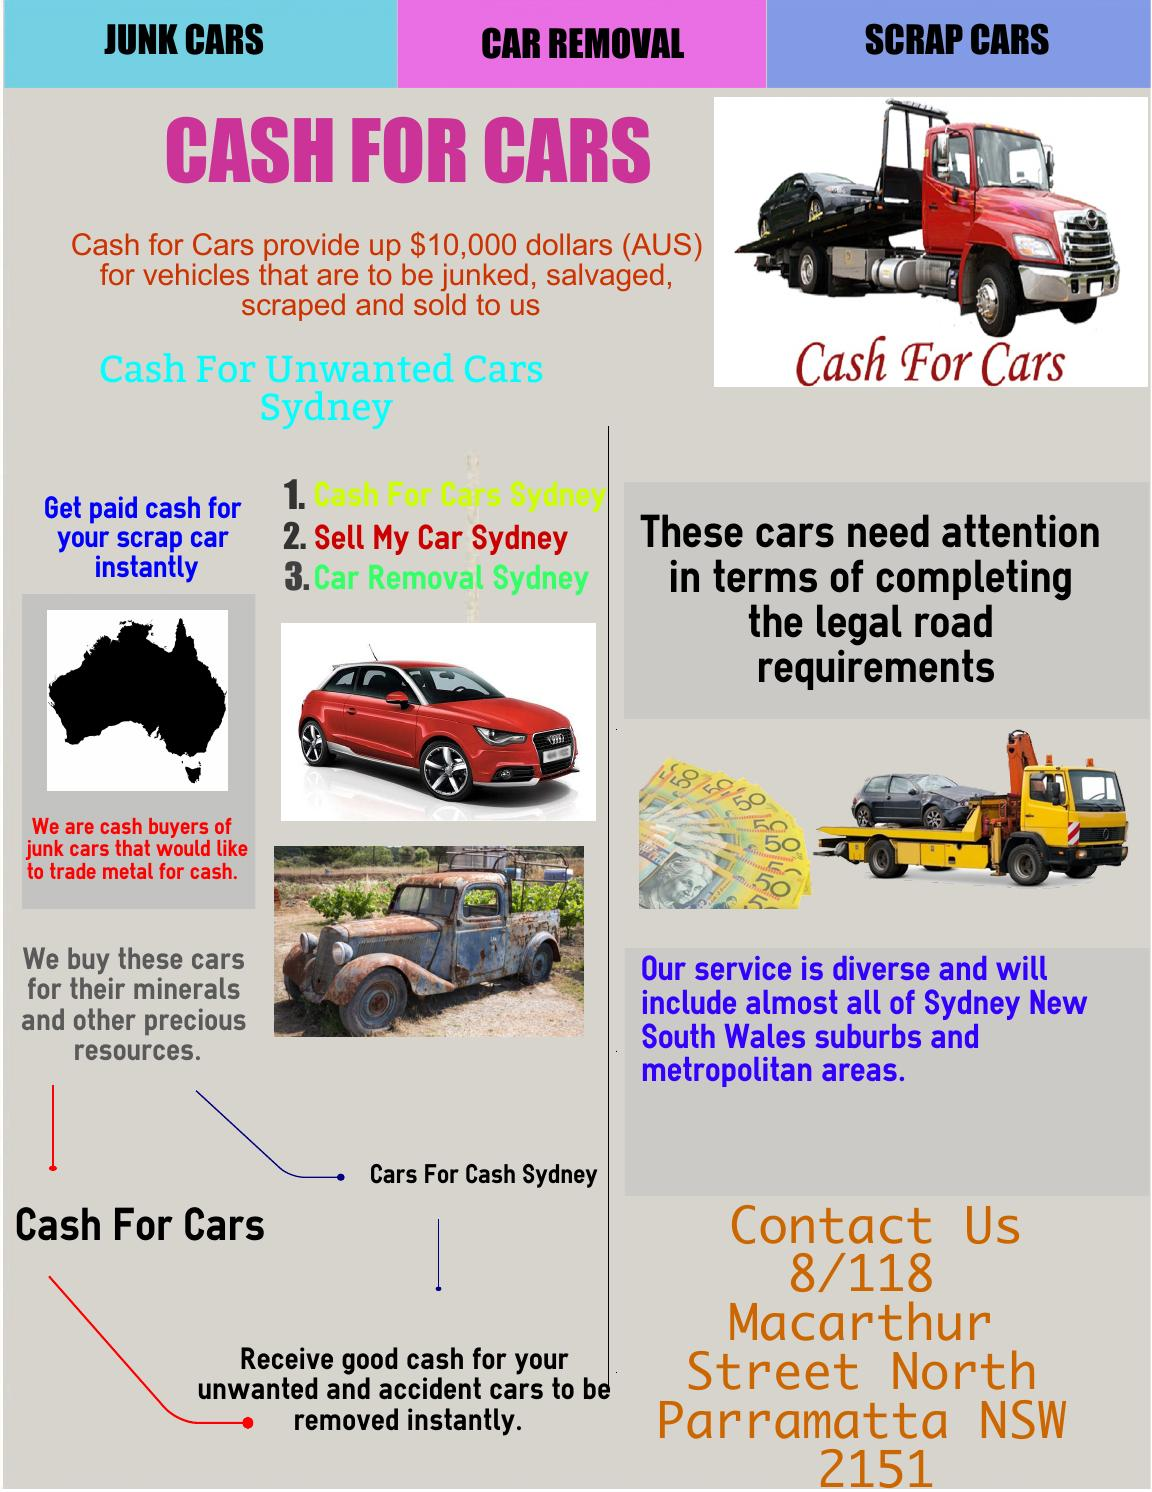 Cash For Unwanted Cars Sydney by Cash For Cars - issuu